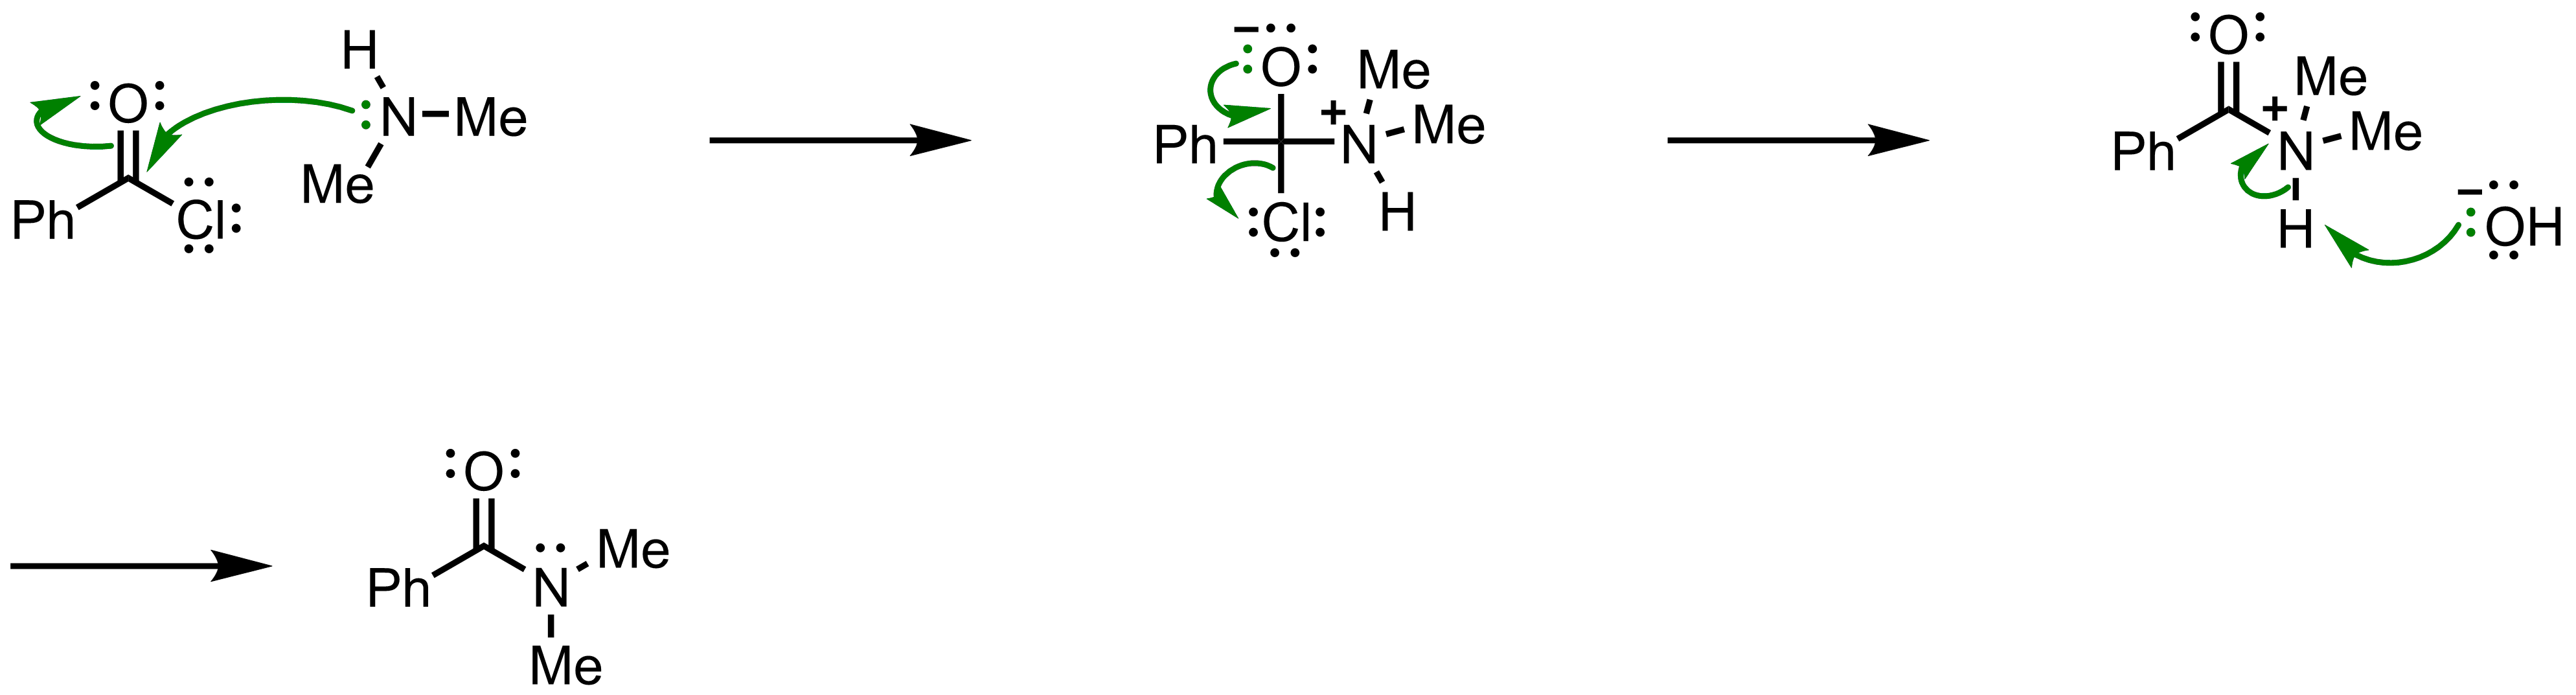 Mechanism of the Schotten-Baumann Reaction